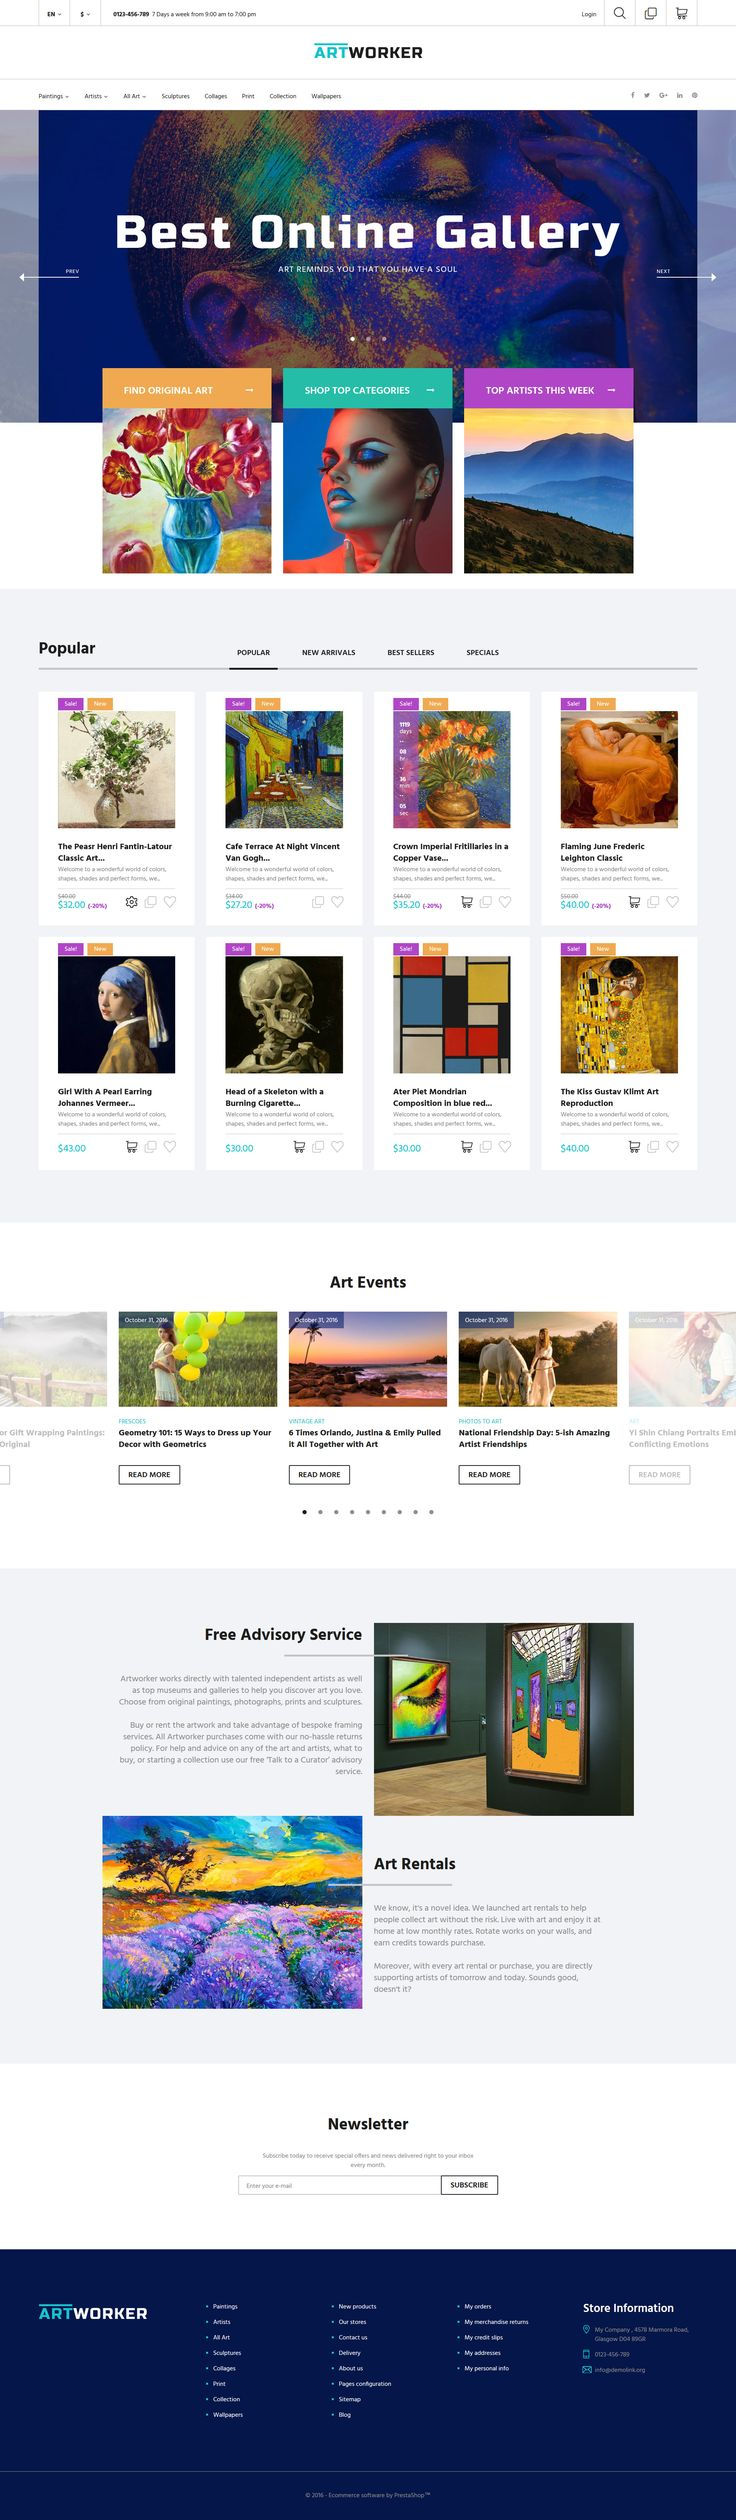 Choose killer looking online art gallery prestashop theme to take visitors breath away and make them fall in love with your works from the first sight